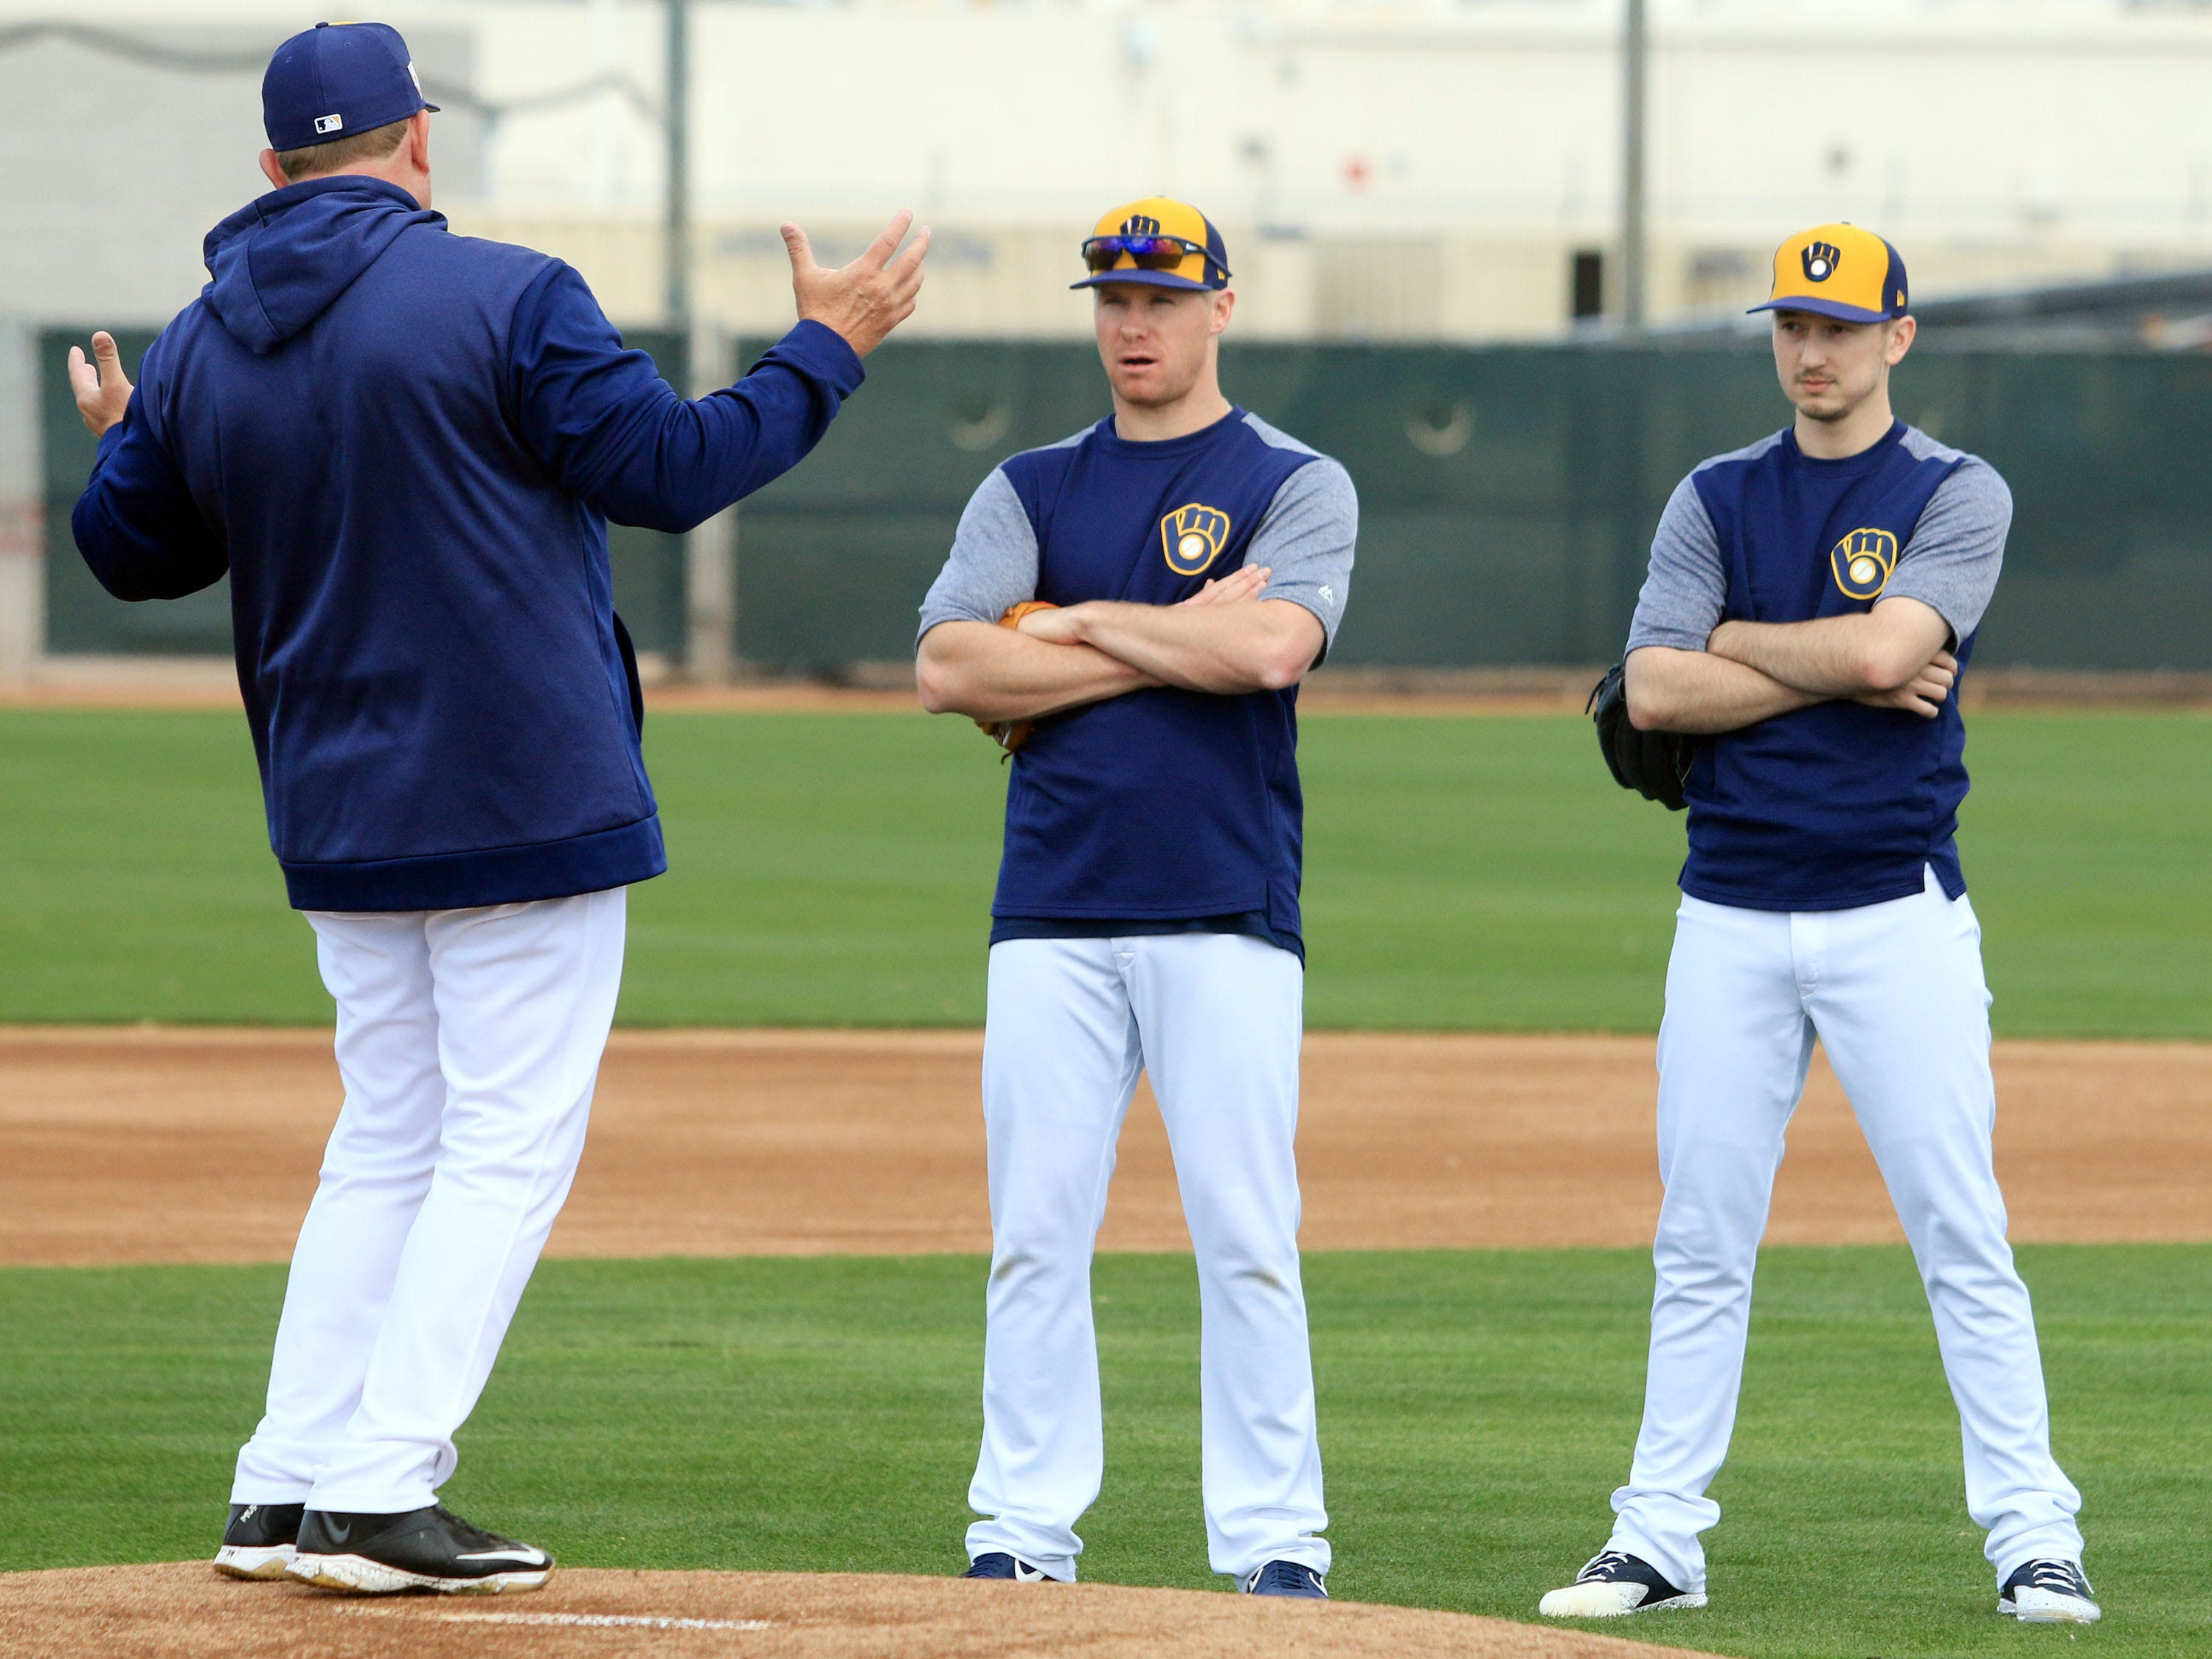 Brewers bench coach Pat Murphy, left, has the attention of pitchers Chase Anderson and Zach Davies on Saturday.